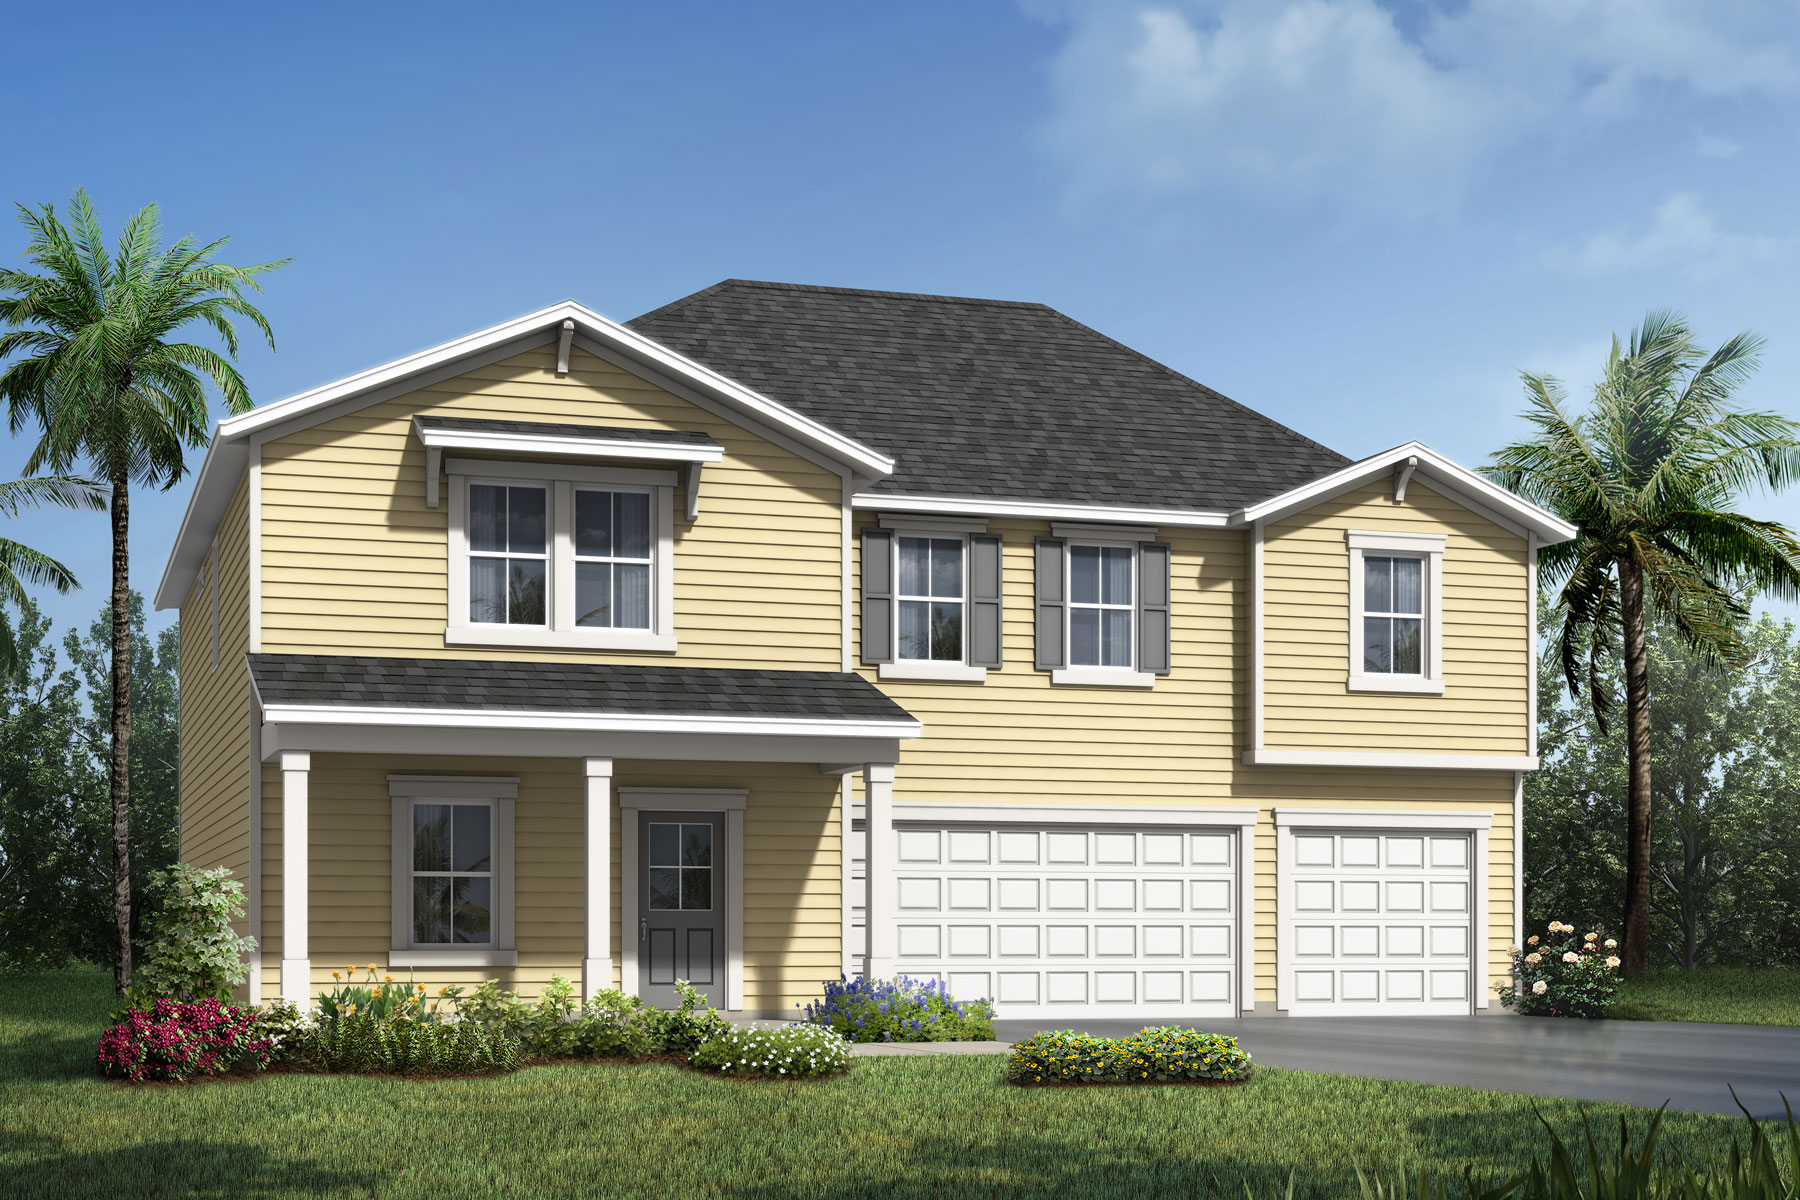 Marshall Plan Elevation Front at RiverTown - Haven in St. Johns Florida by Mattamy Homes